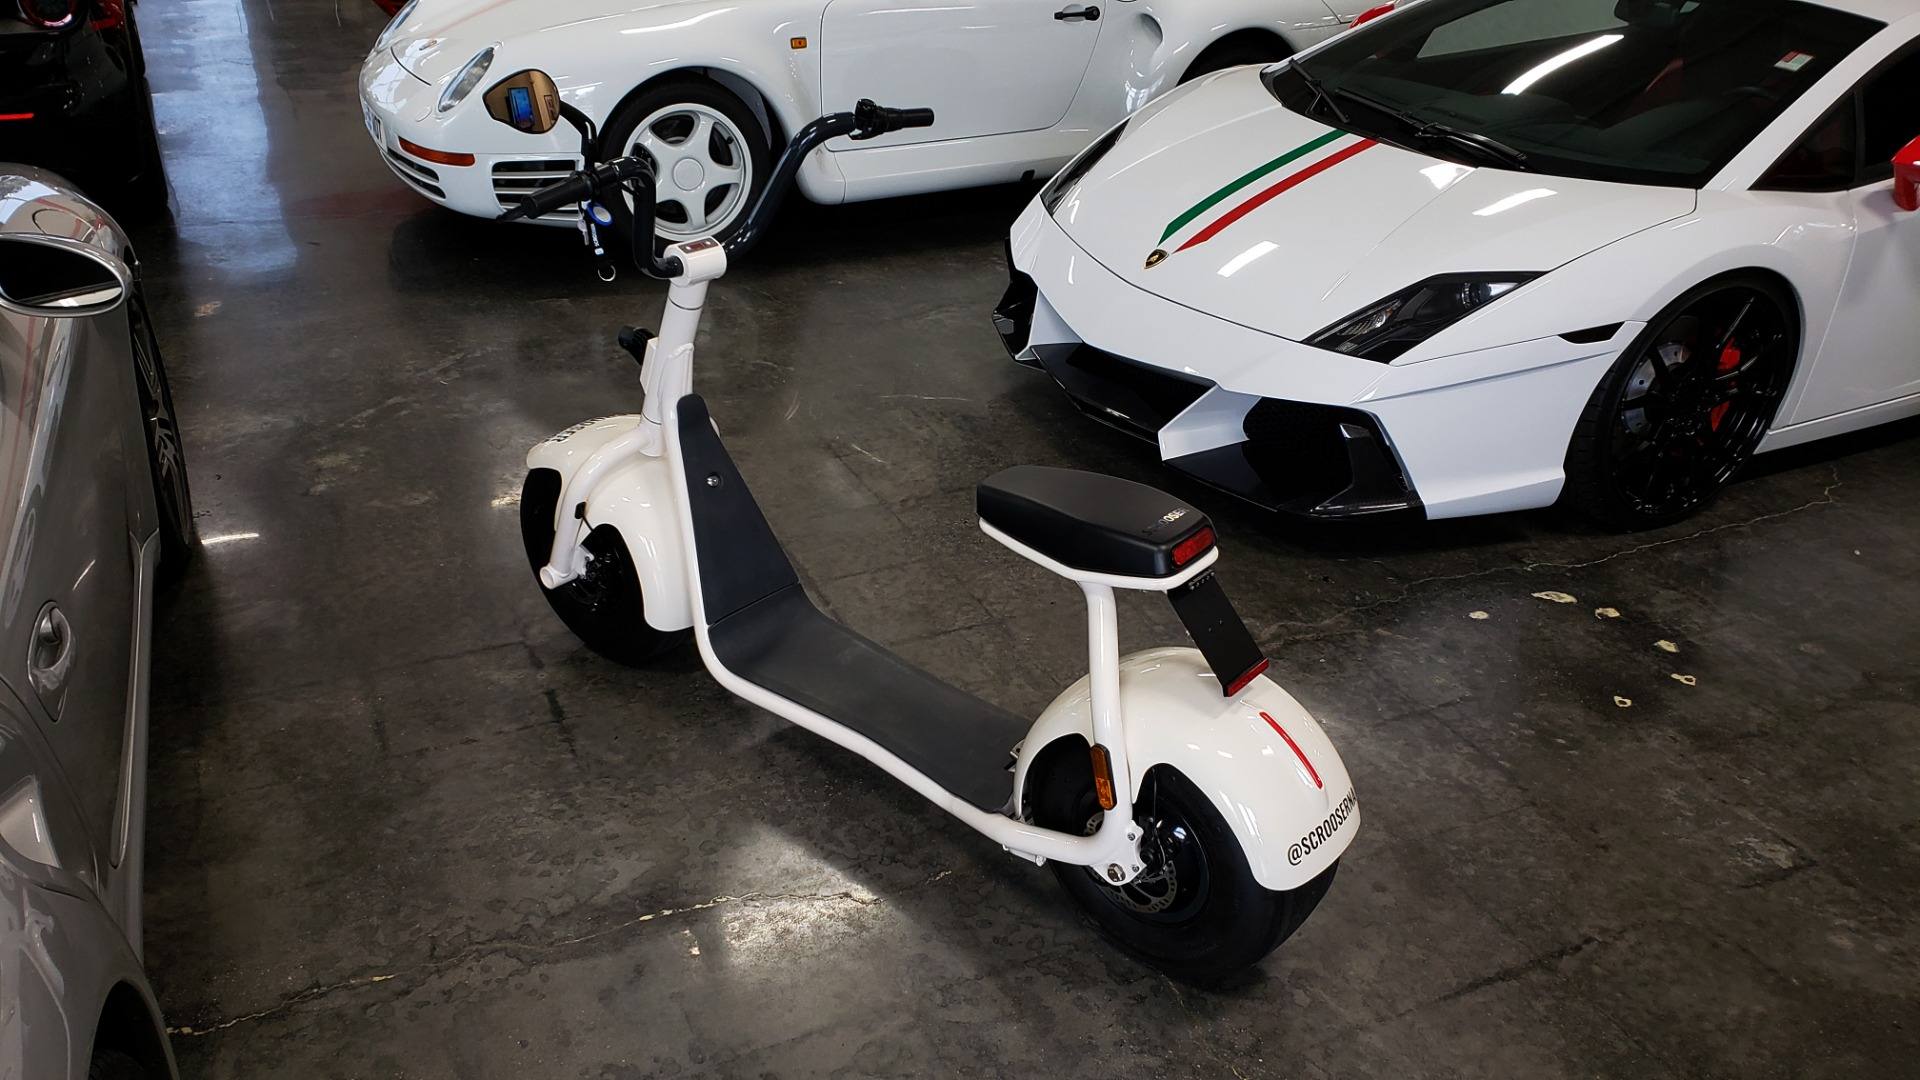 Used 2018 SCROOSER ELECTRIC SCOOTER SELF BALANCED / WHITE / 15.5 MPH / 34 MI RANGE for sale Sold at Formula Imports in Charlotte NC 28227 5